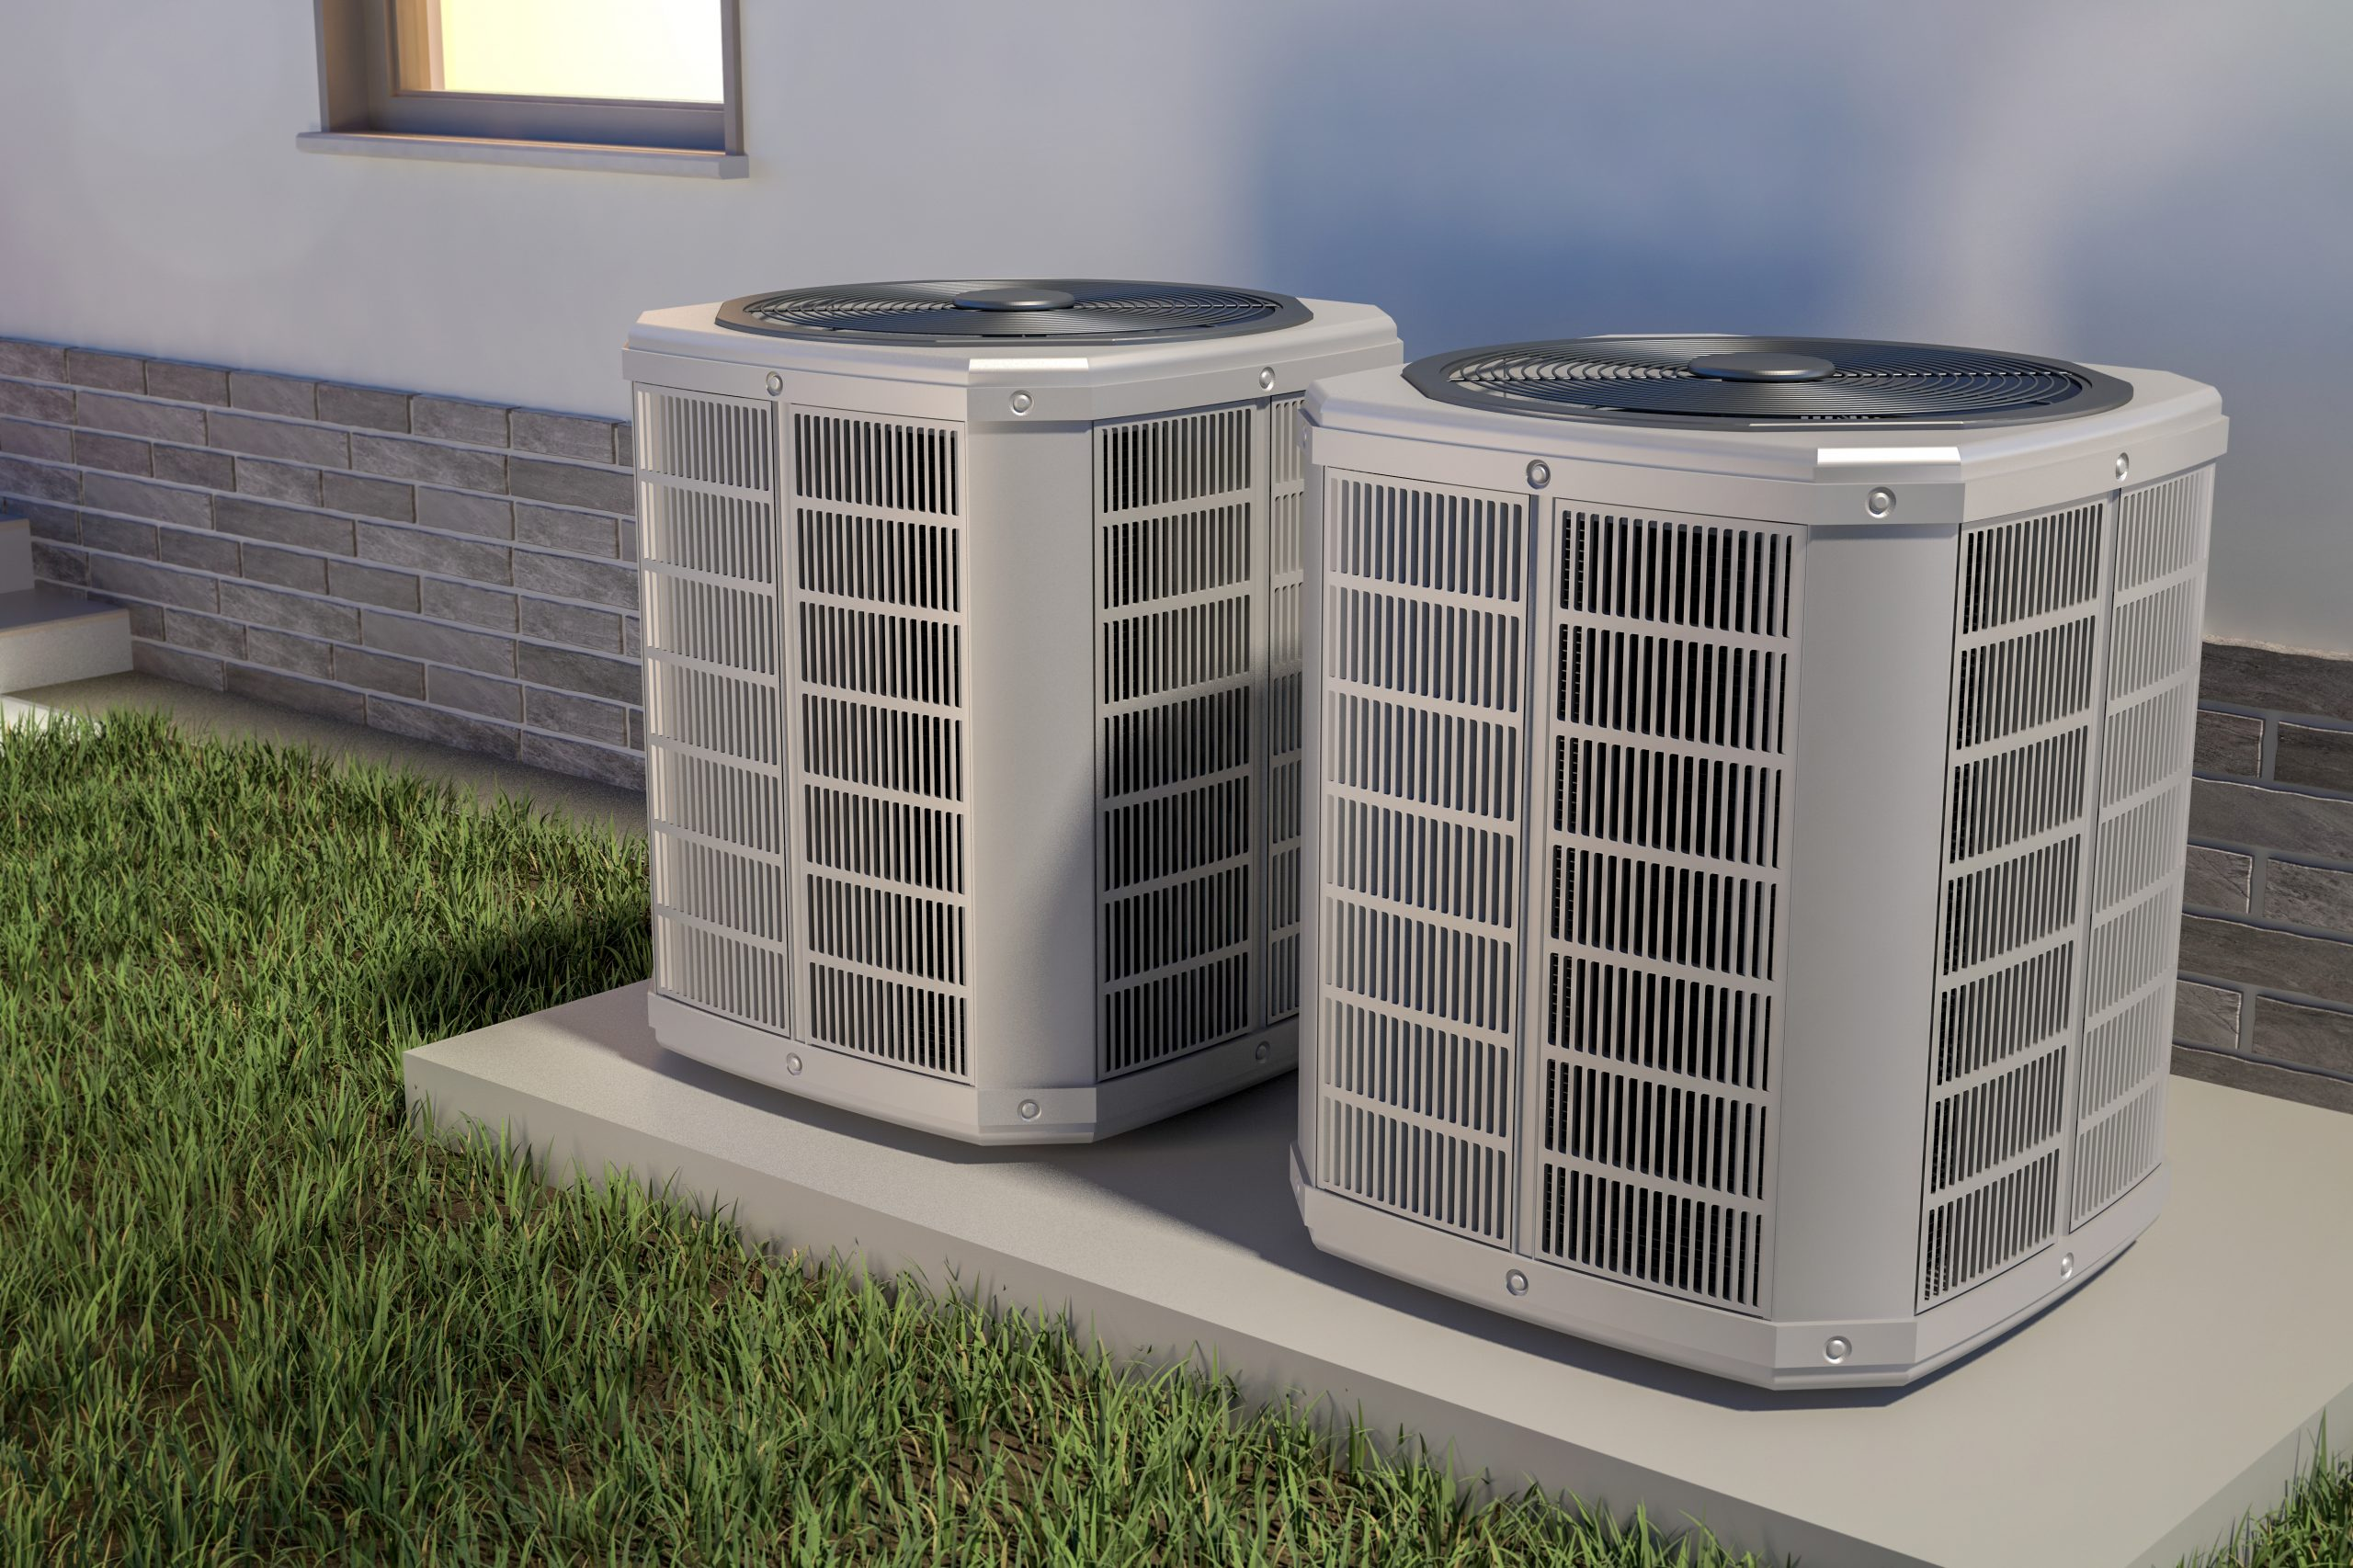 Air,Heat,Pumps,And,House,,3d,Illustration